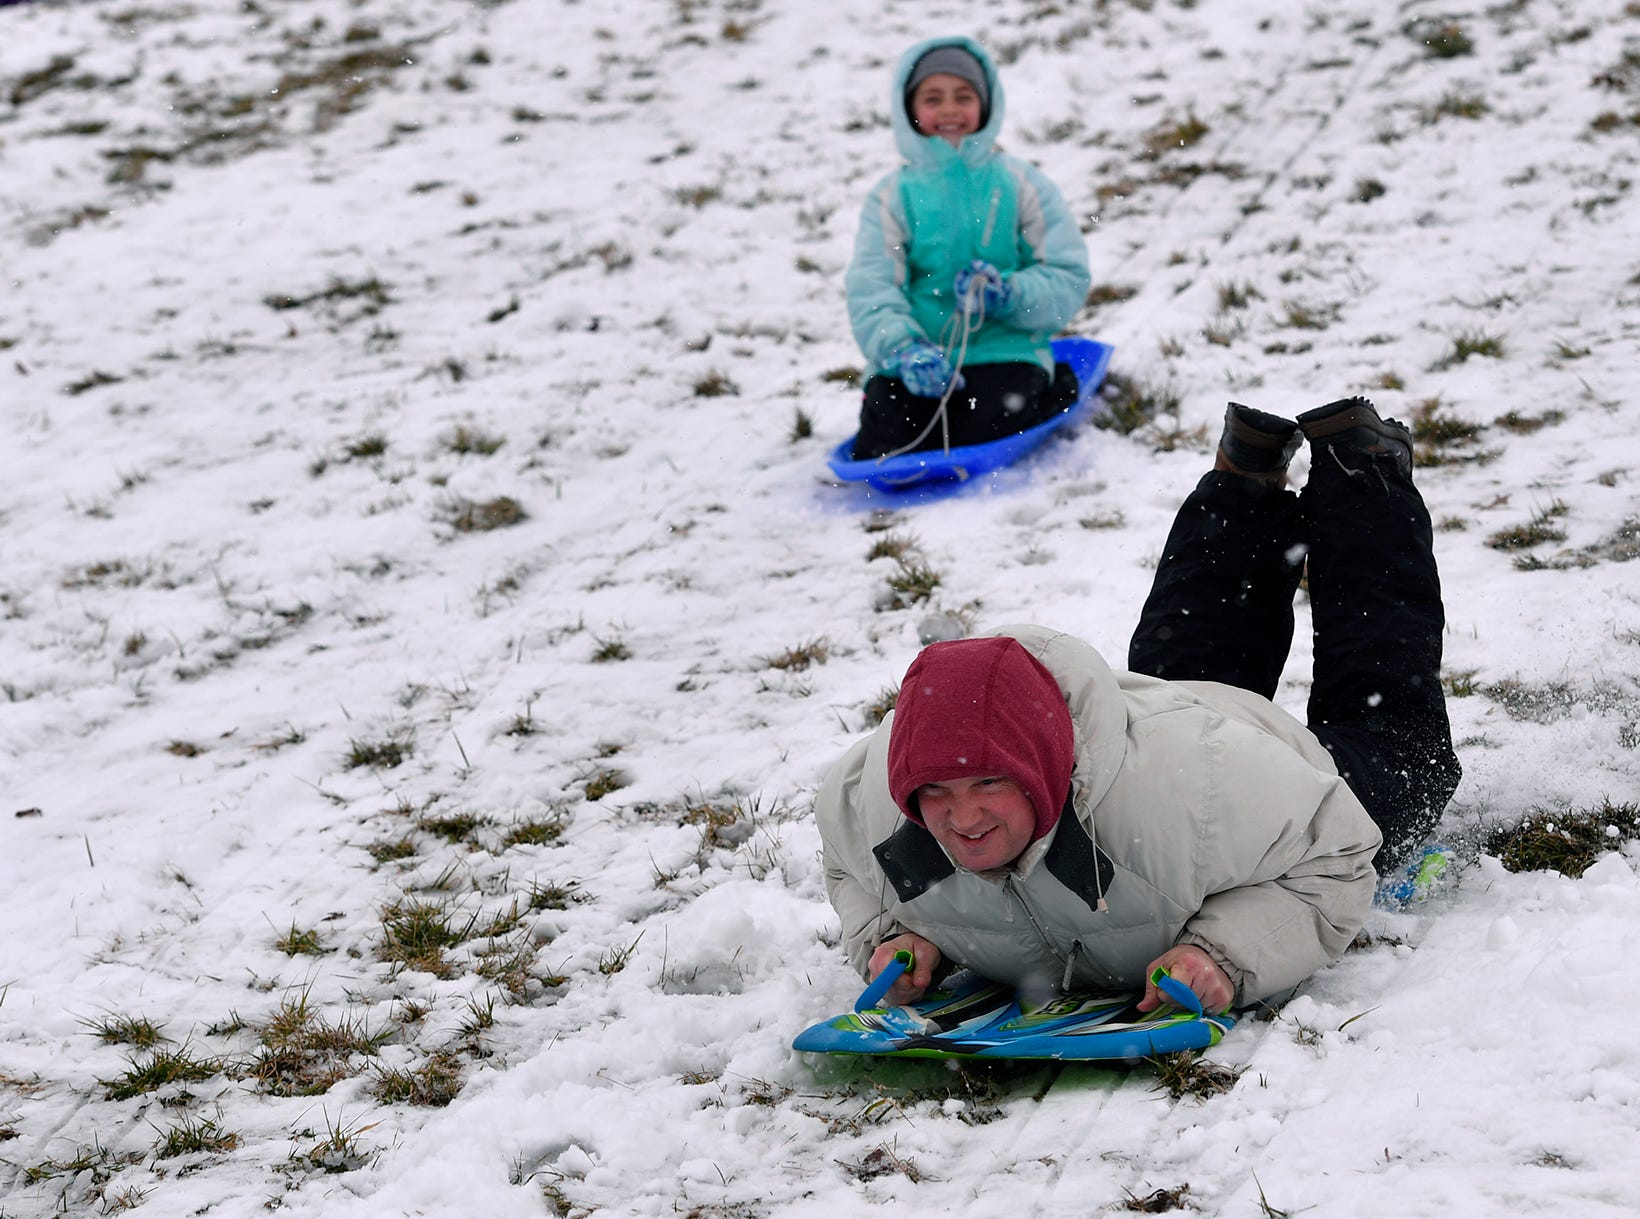 Jason Shiffer, right, and daughter Katelyn, 9, of Springettsbury Township, race down the hill while sledding on a snow day at Springettsbury Park, Monday, Feb. 11, 2019. John A. Pavoncello photo